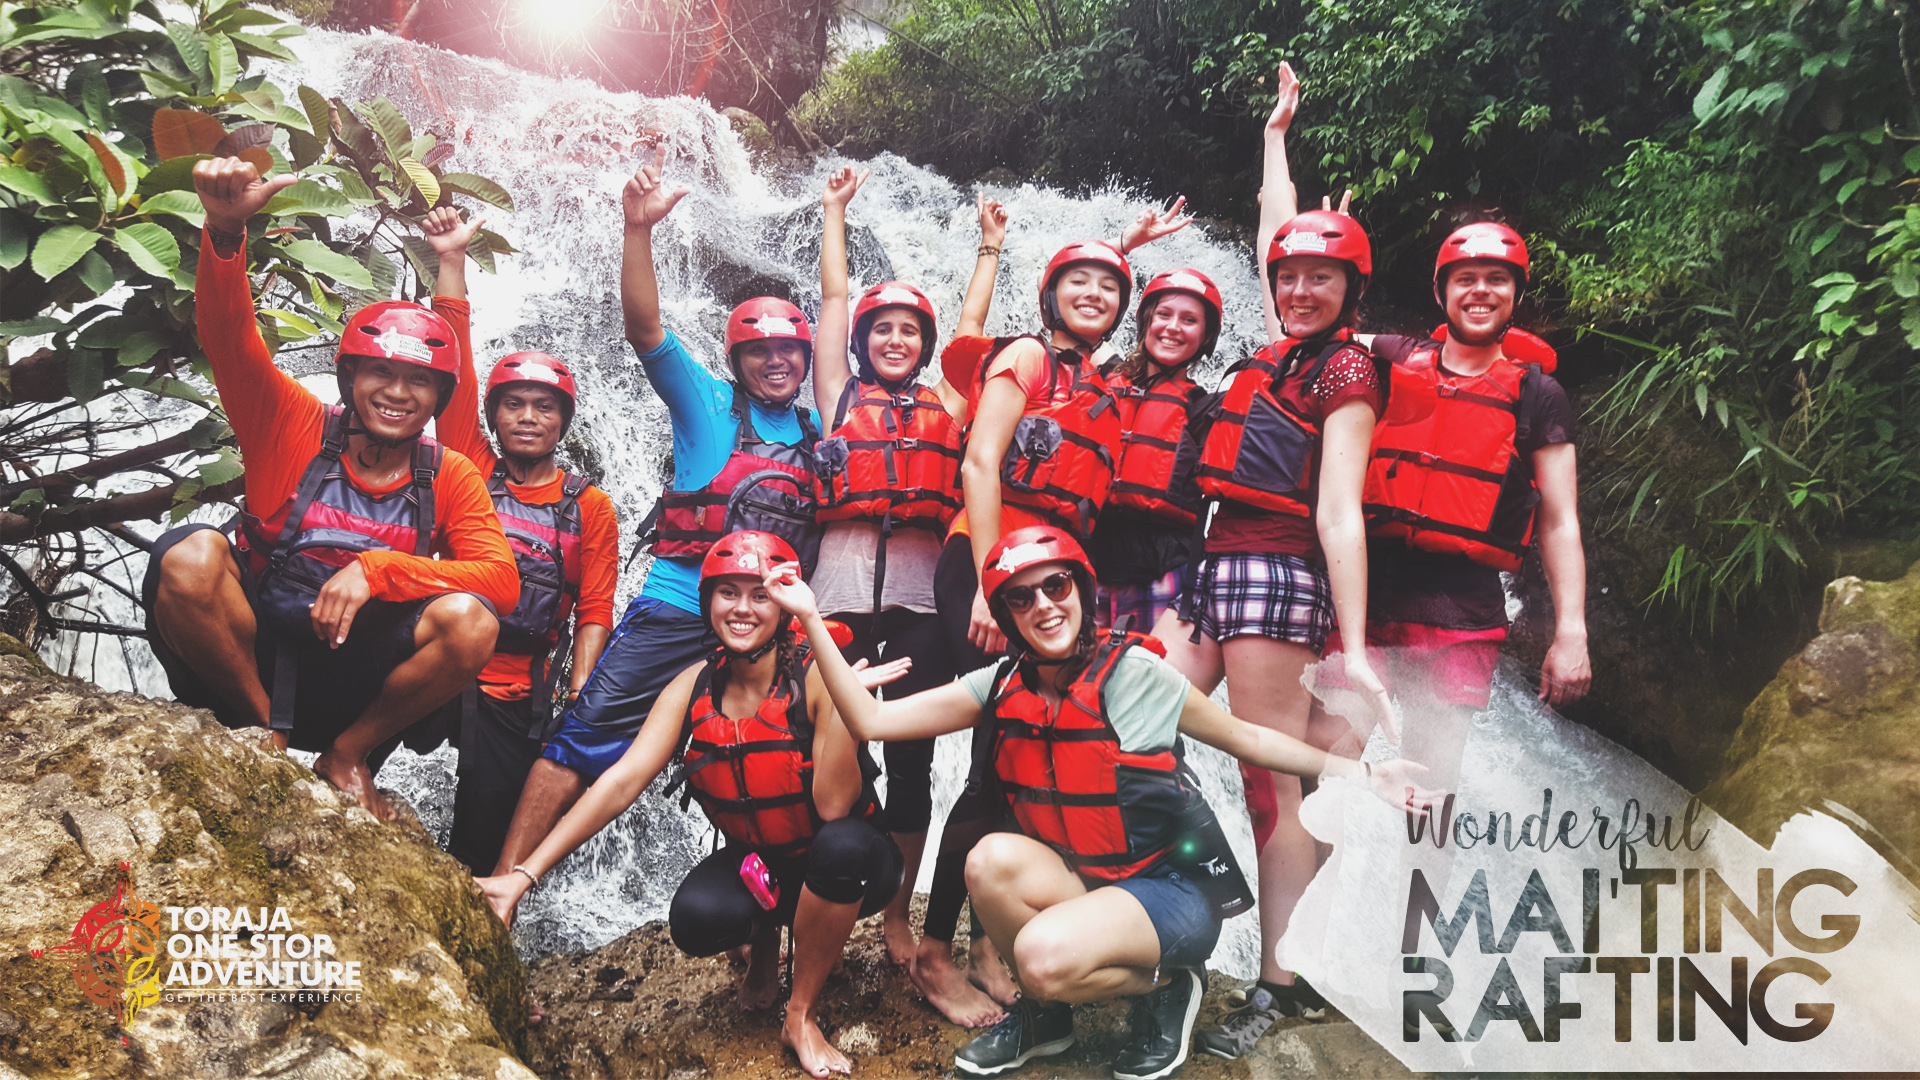 Wonderful Mai'ting Rafting